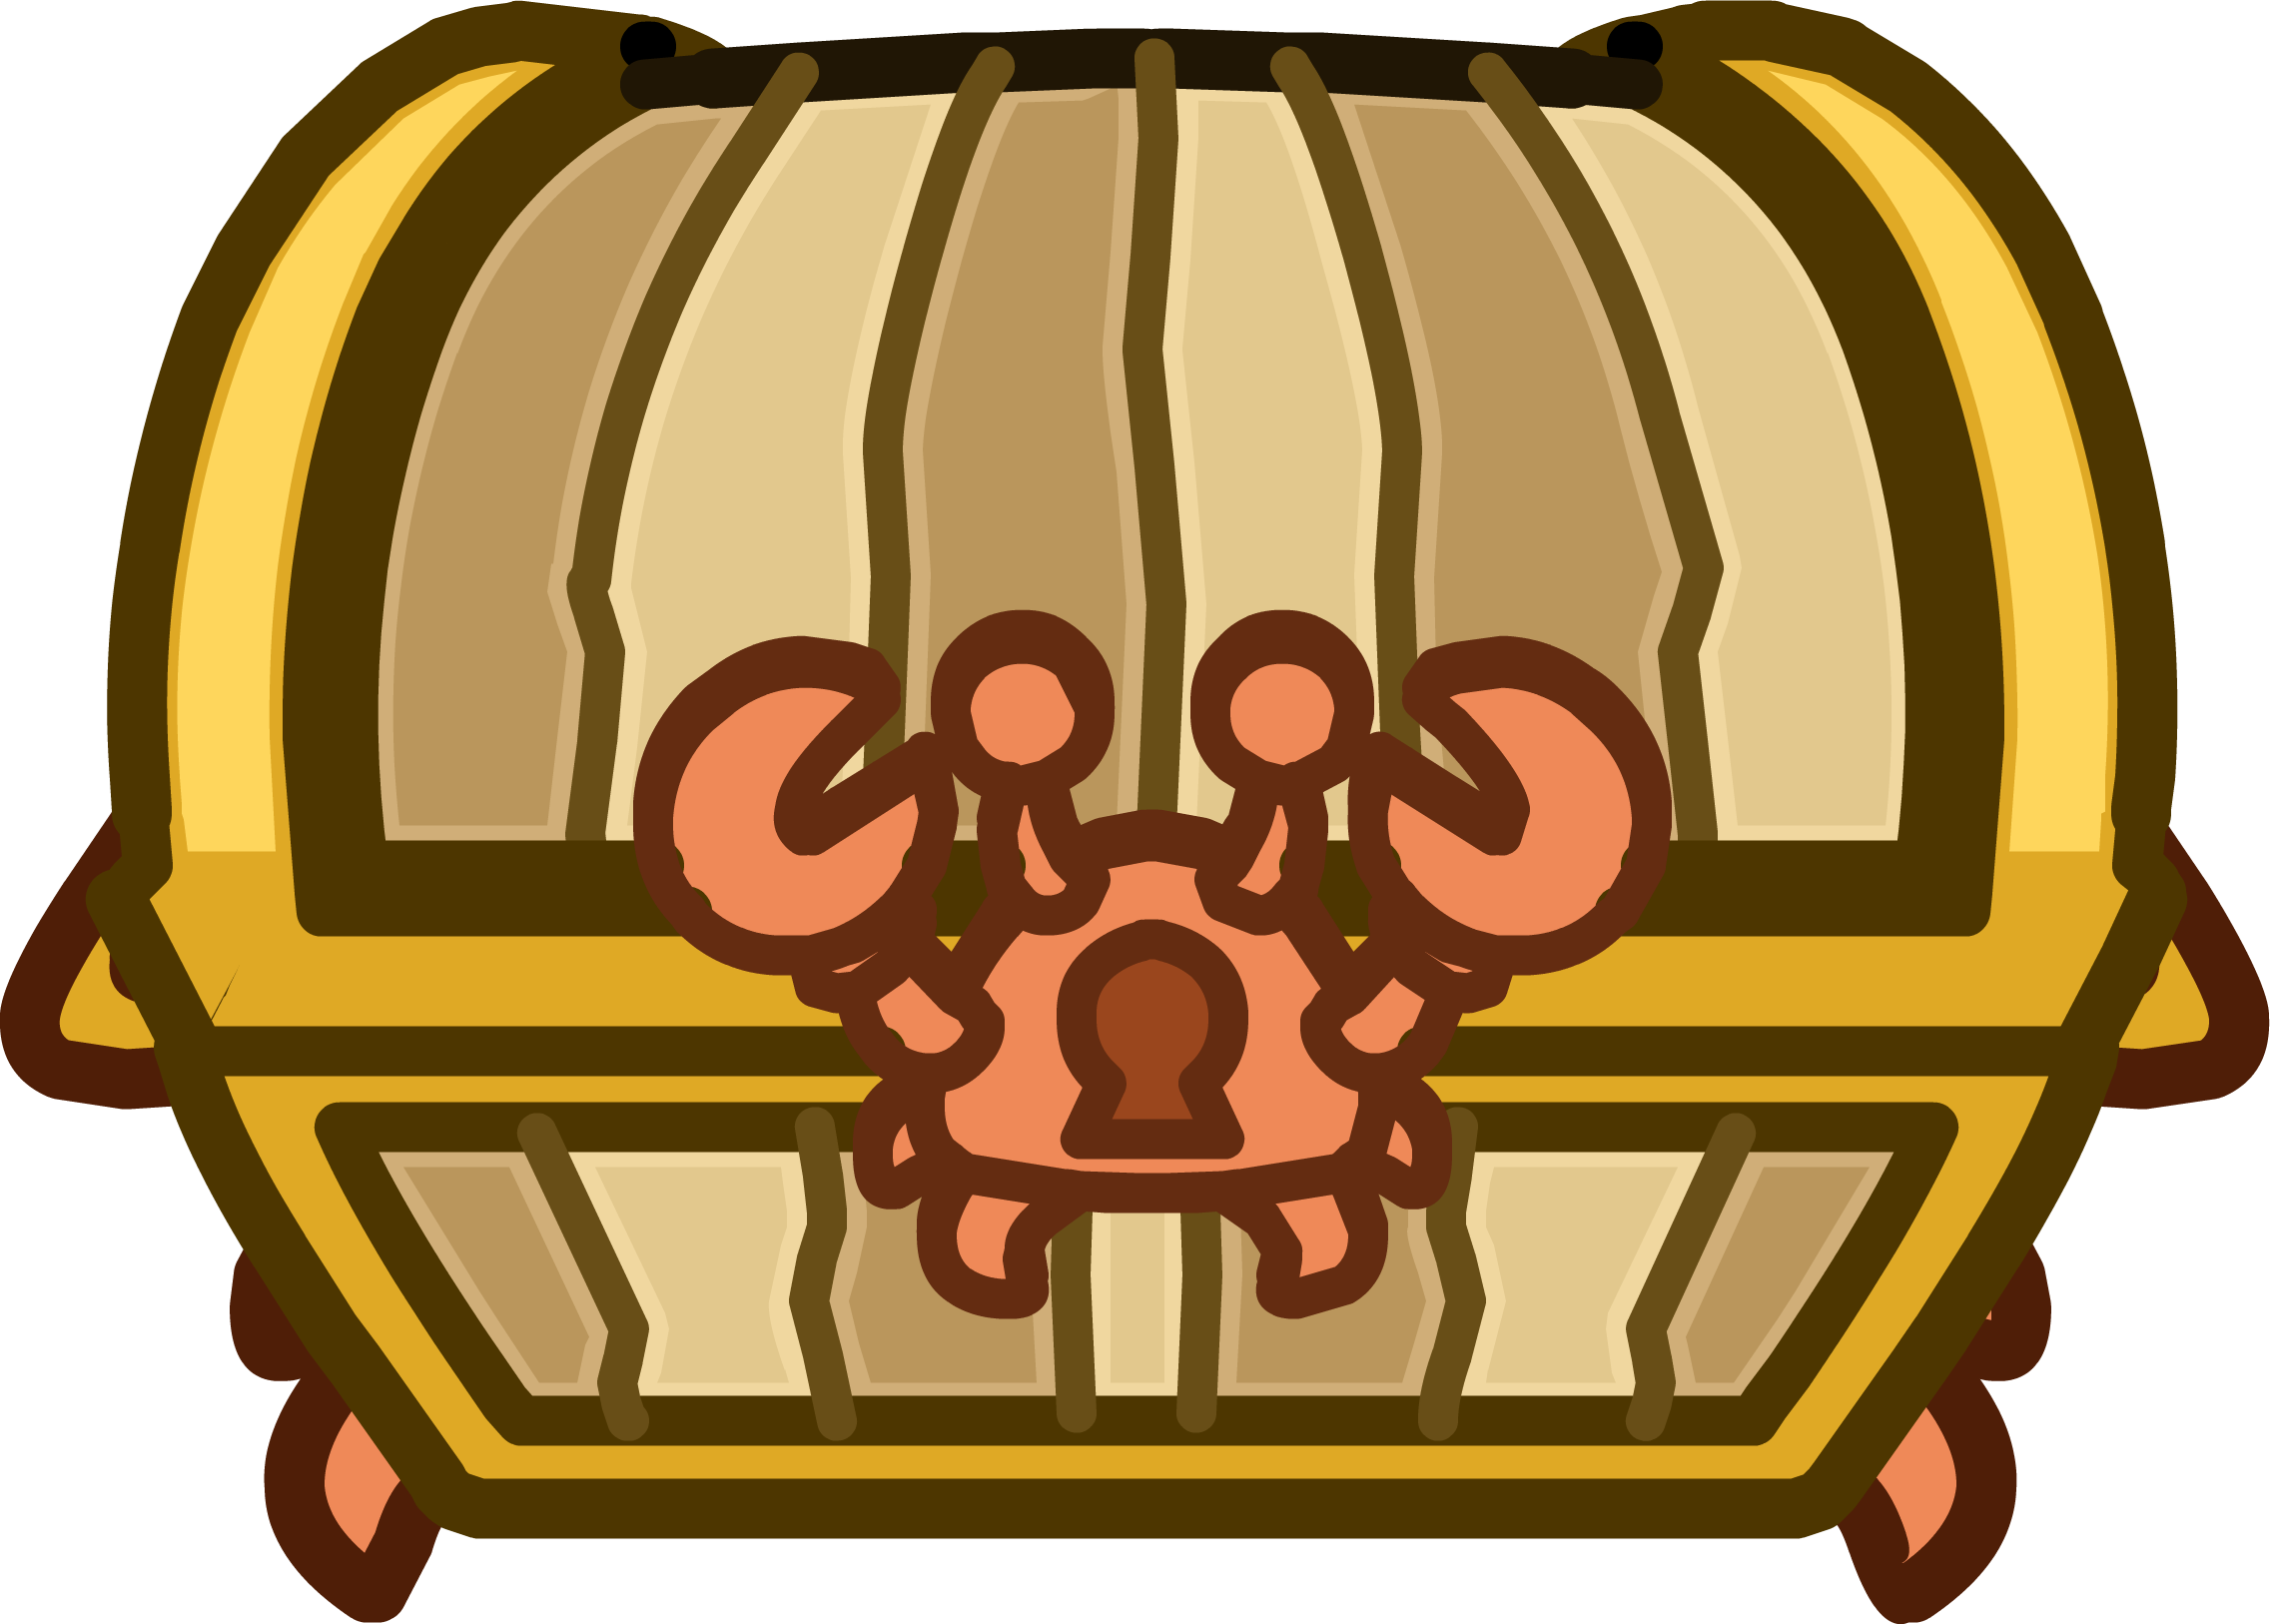 Crab Treasure Chest